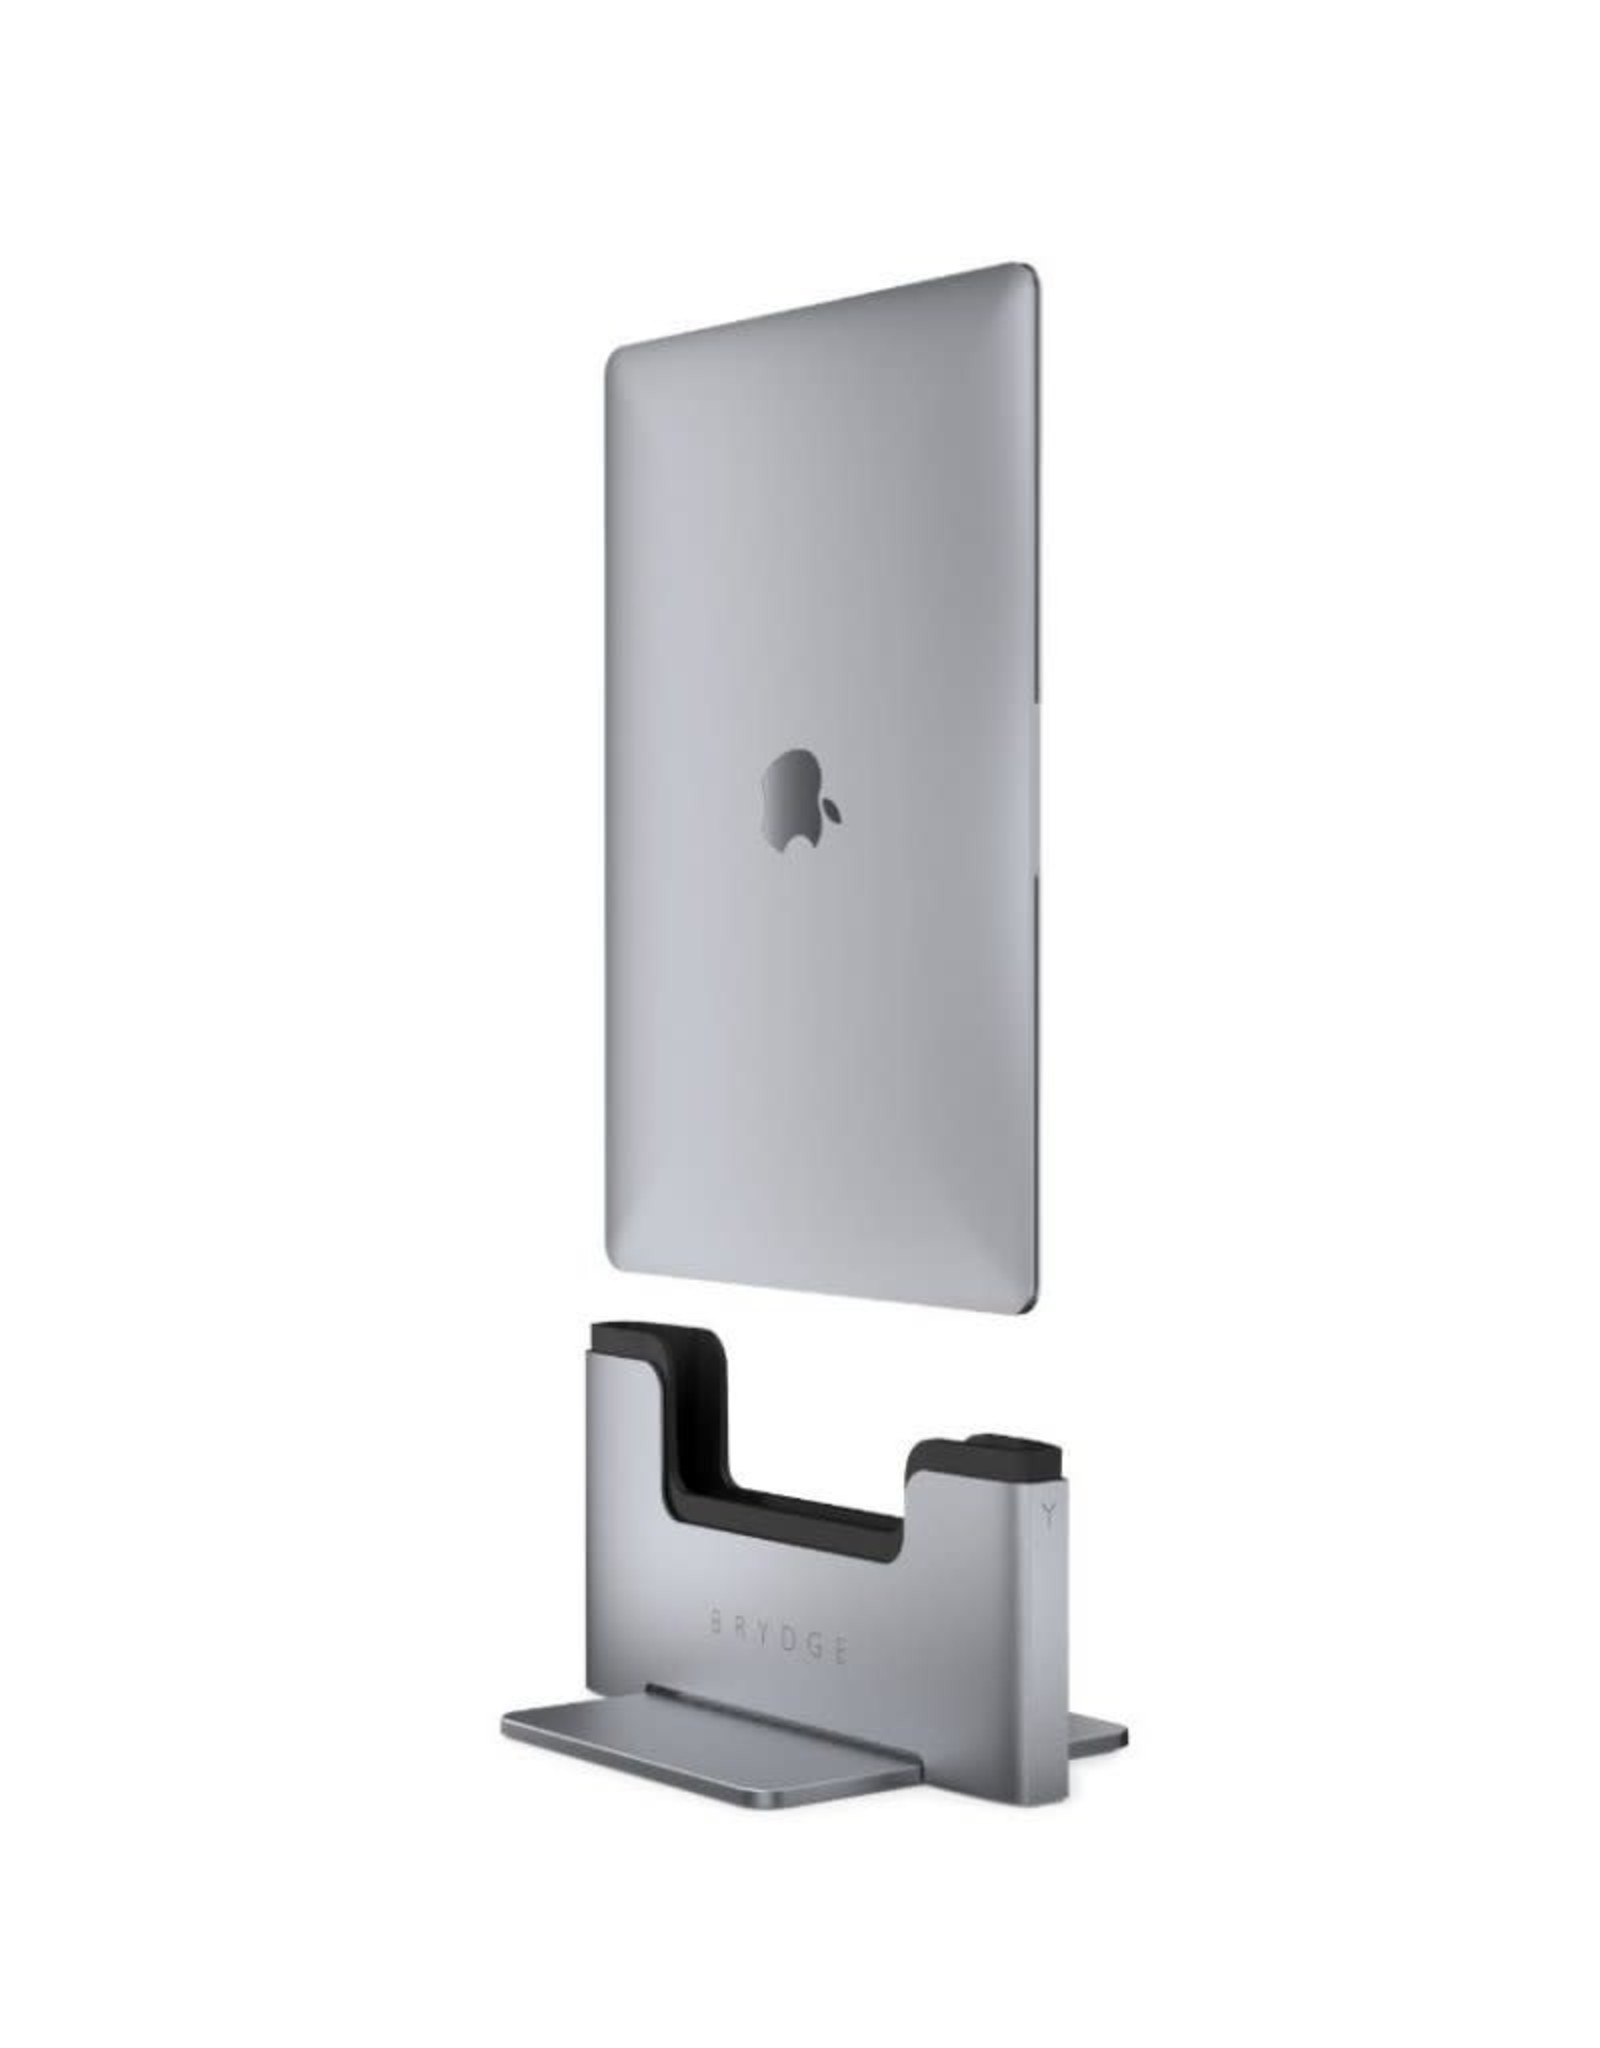 Brydge Vertical Dock for 15 inc Macbook Pro BRY15MBP